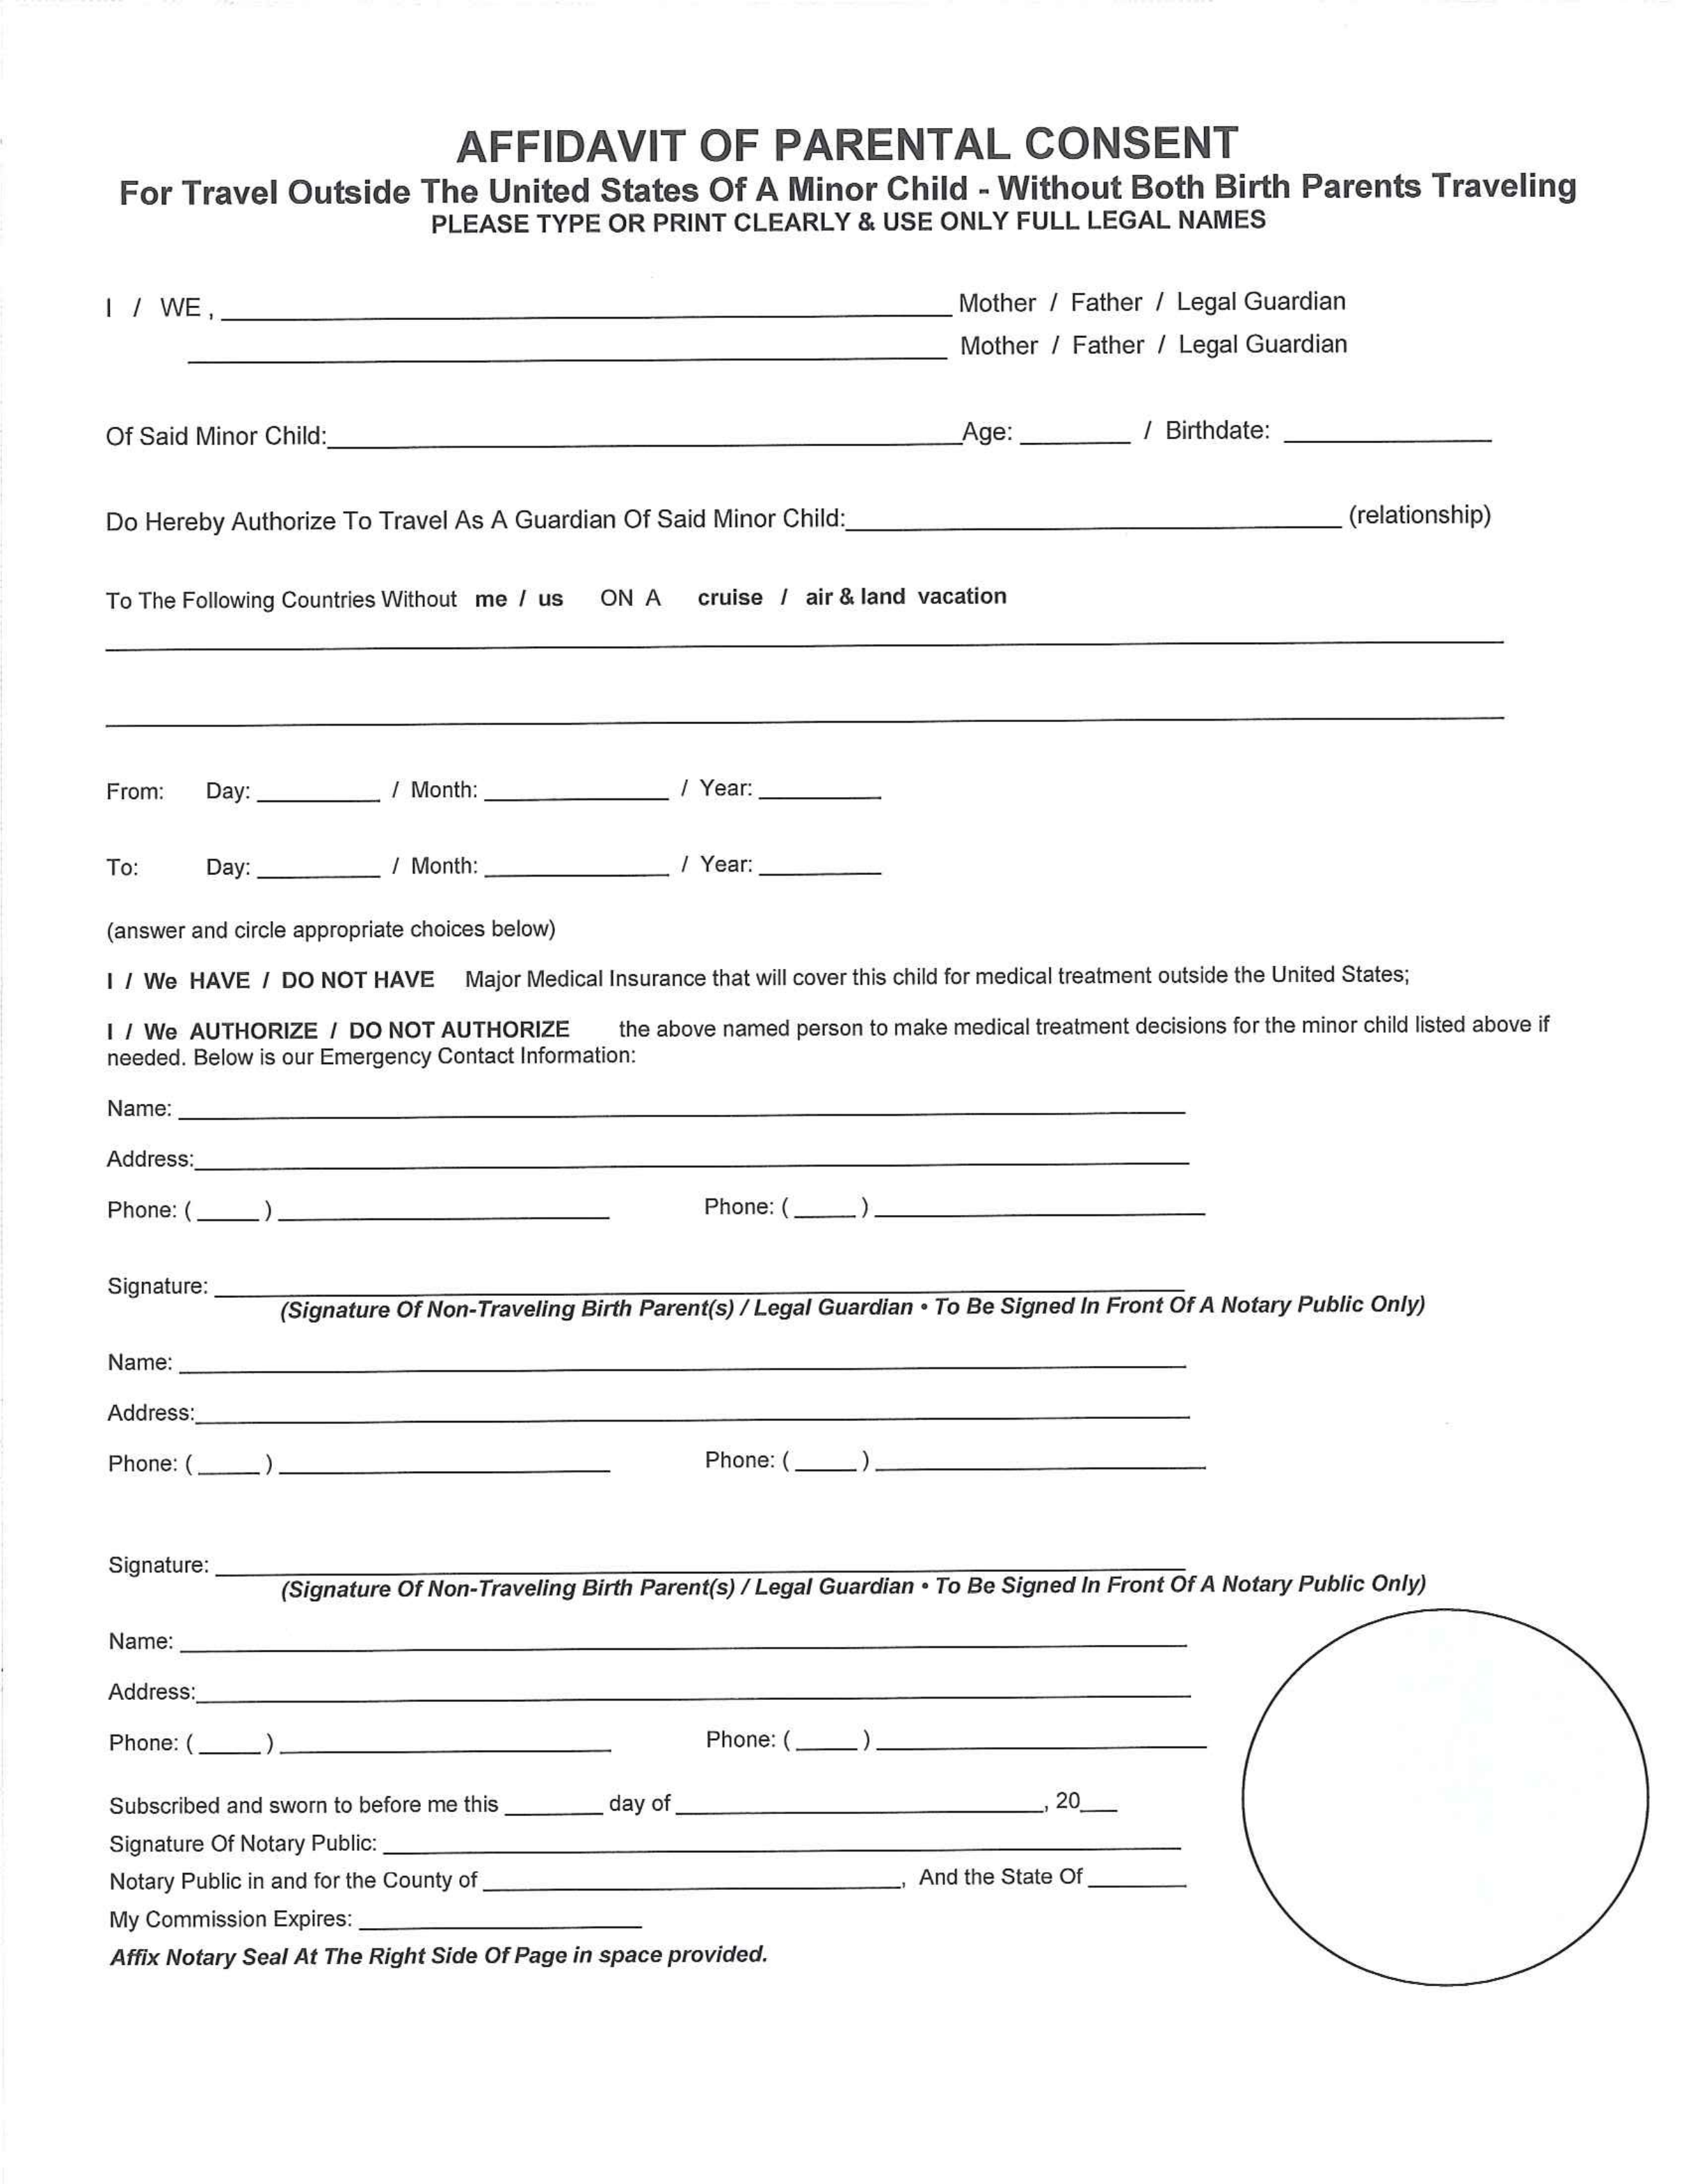 Affidavit for parental consent form free download for Free child travel consent form template